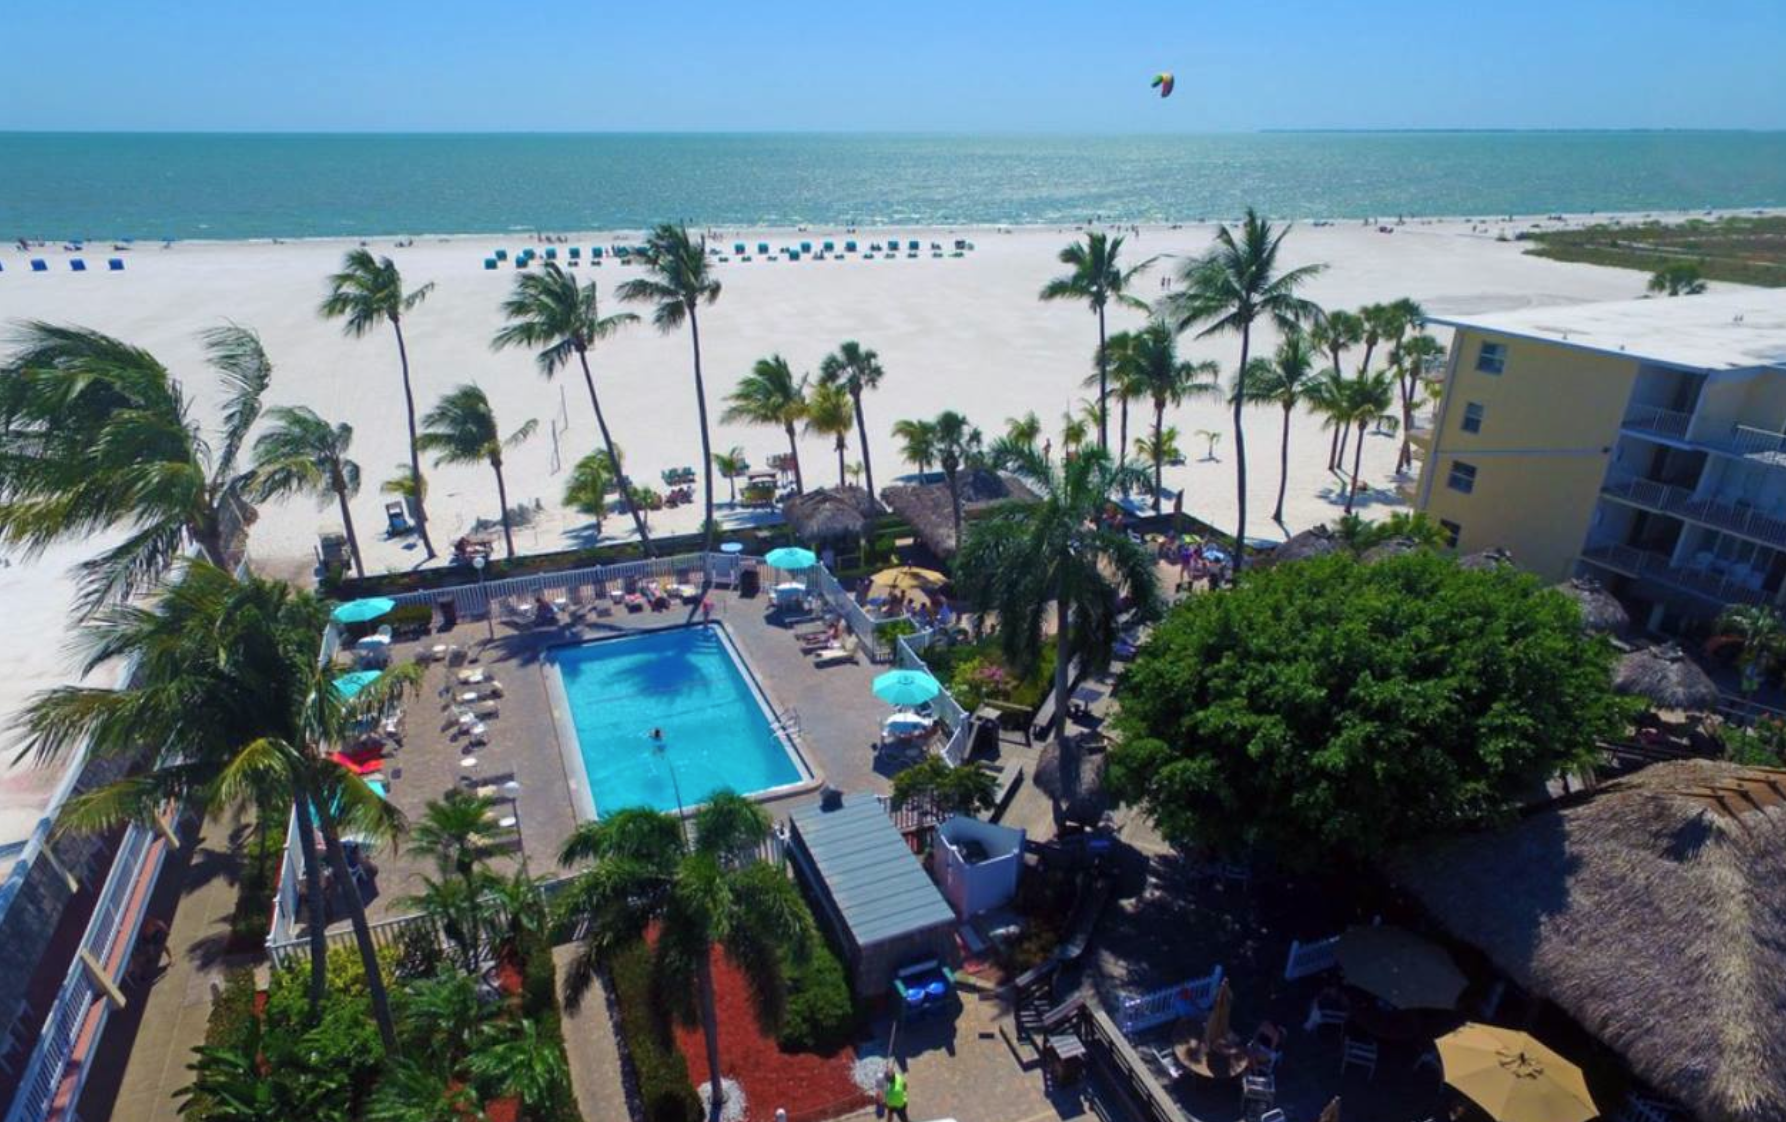 Pool Or Beach The Choice Is Yours At Outrigger Resort On Fort Myers Fortmyersbeach Outriggerbeachresort Photo Taken By Southwest Florida